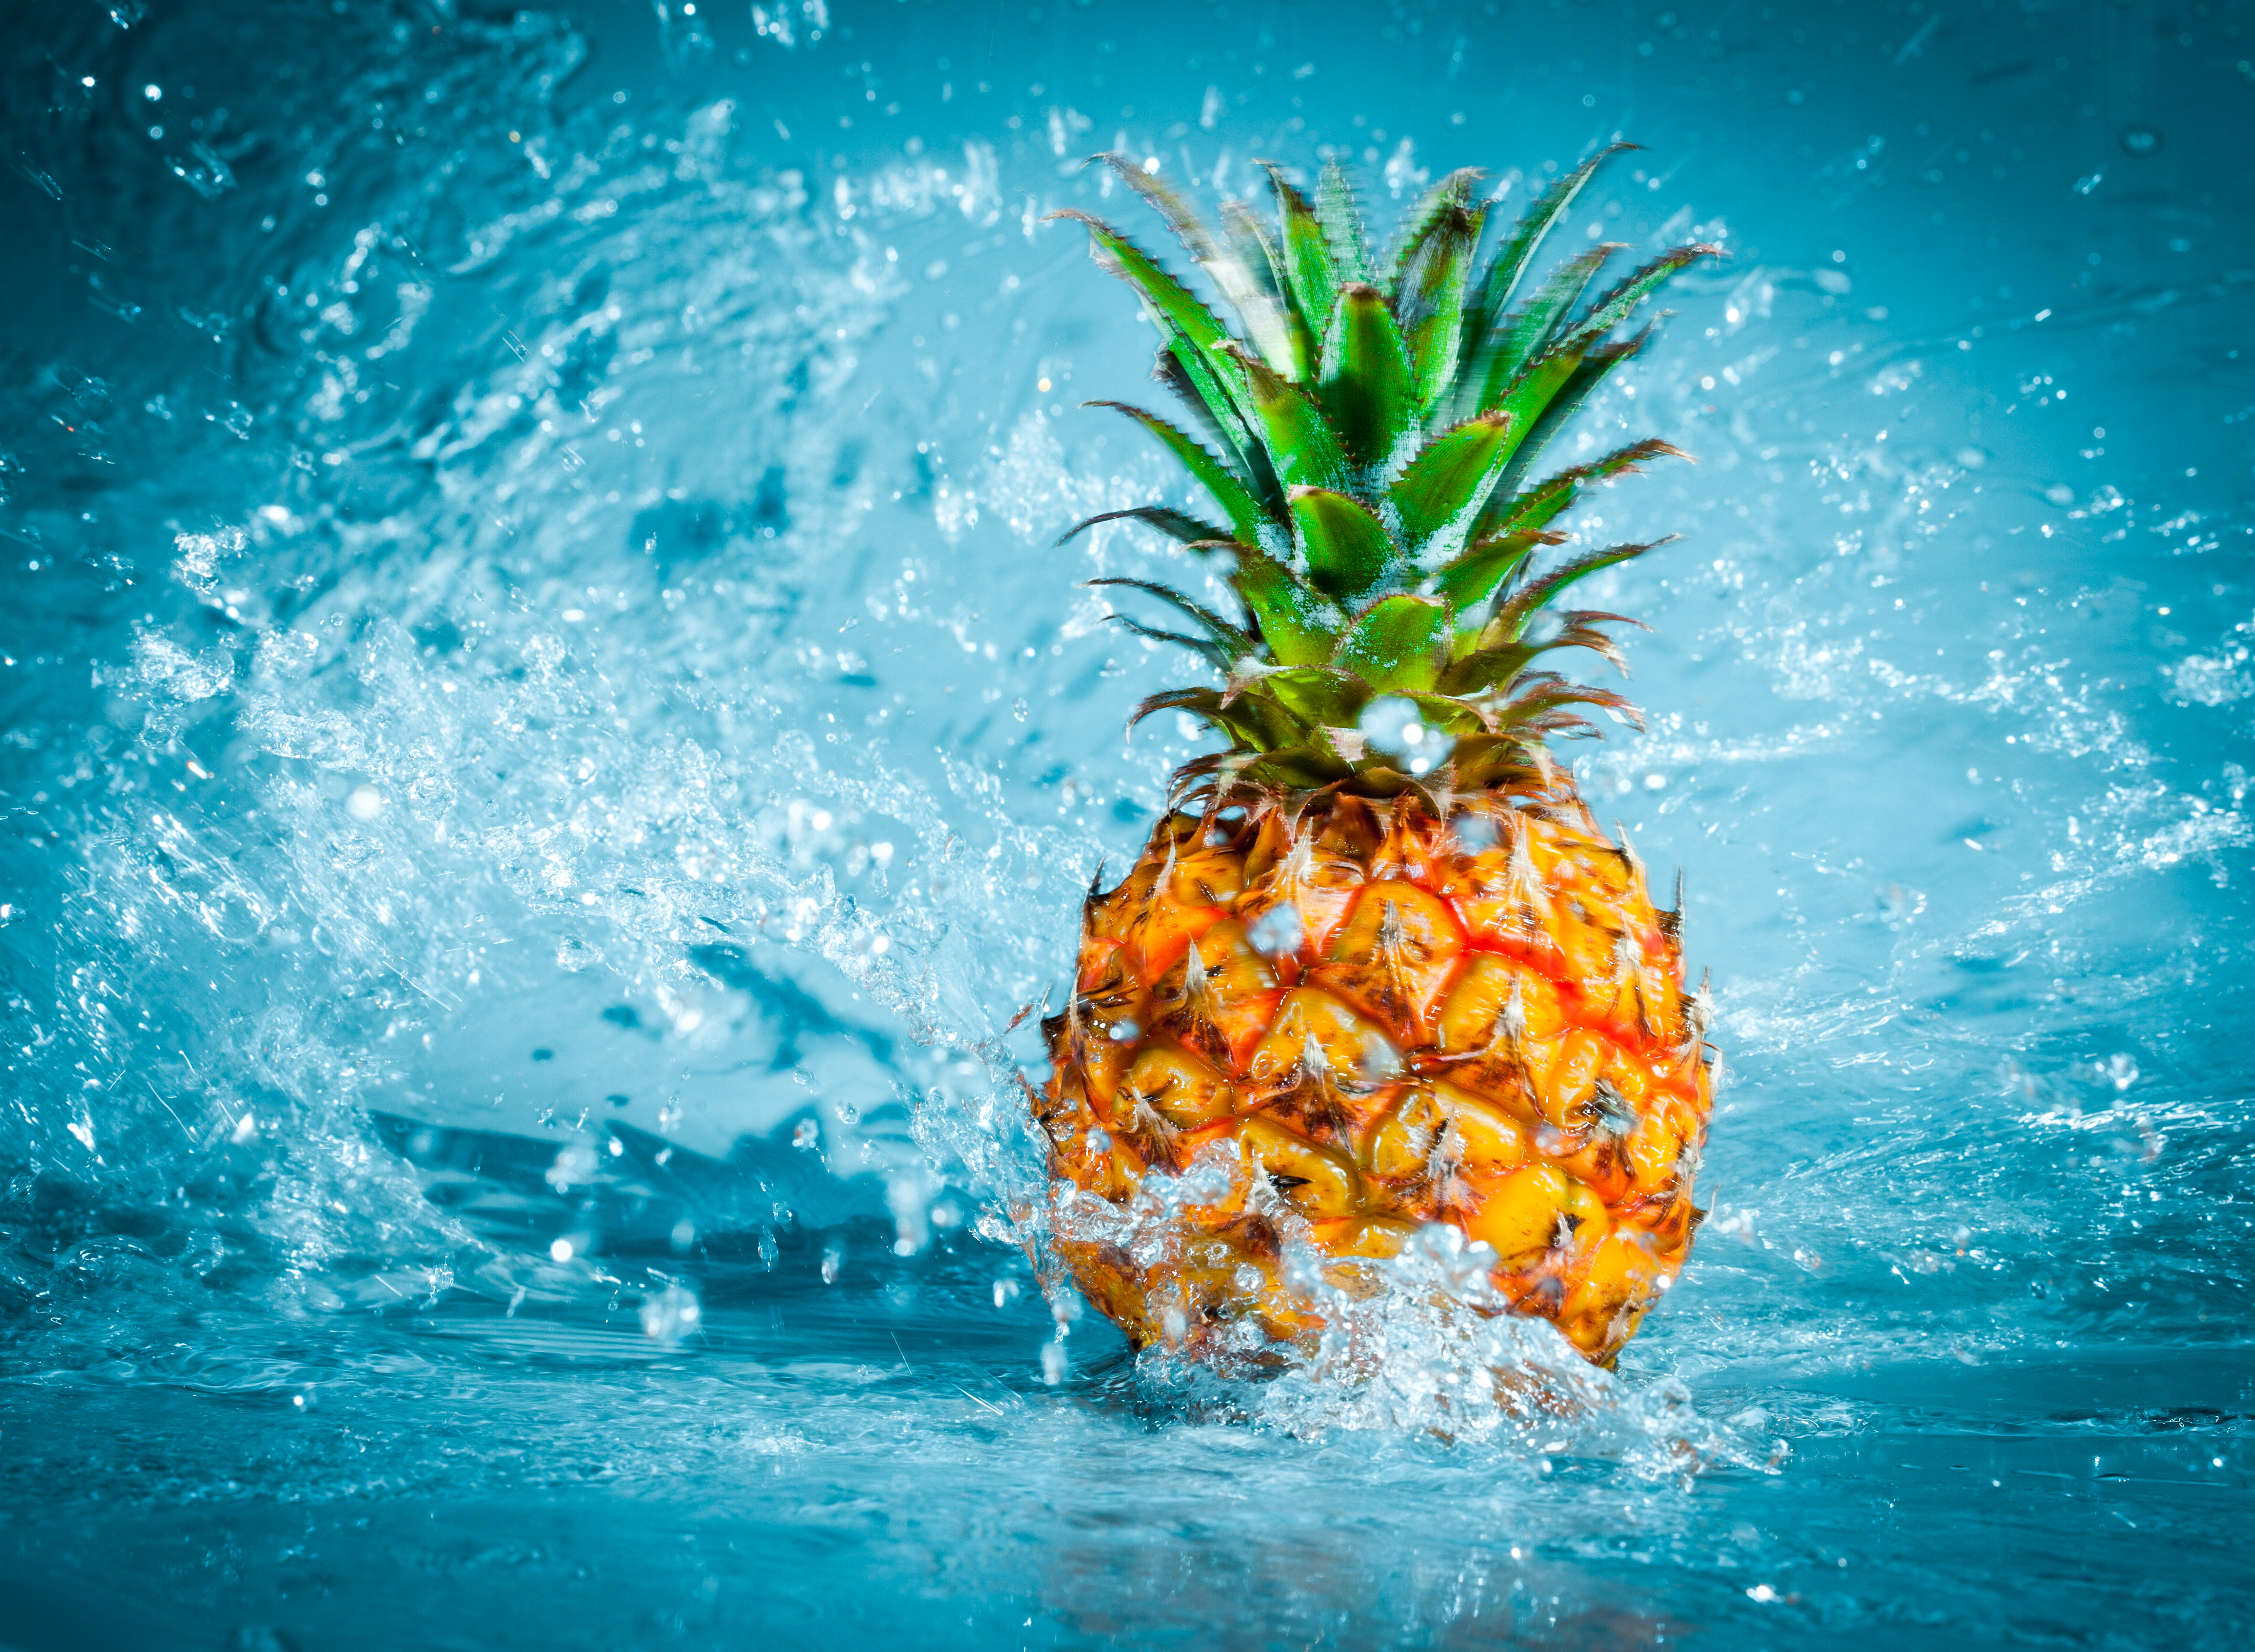 26 Pineapple HD Wallpapers